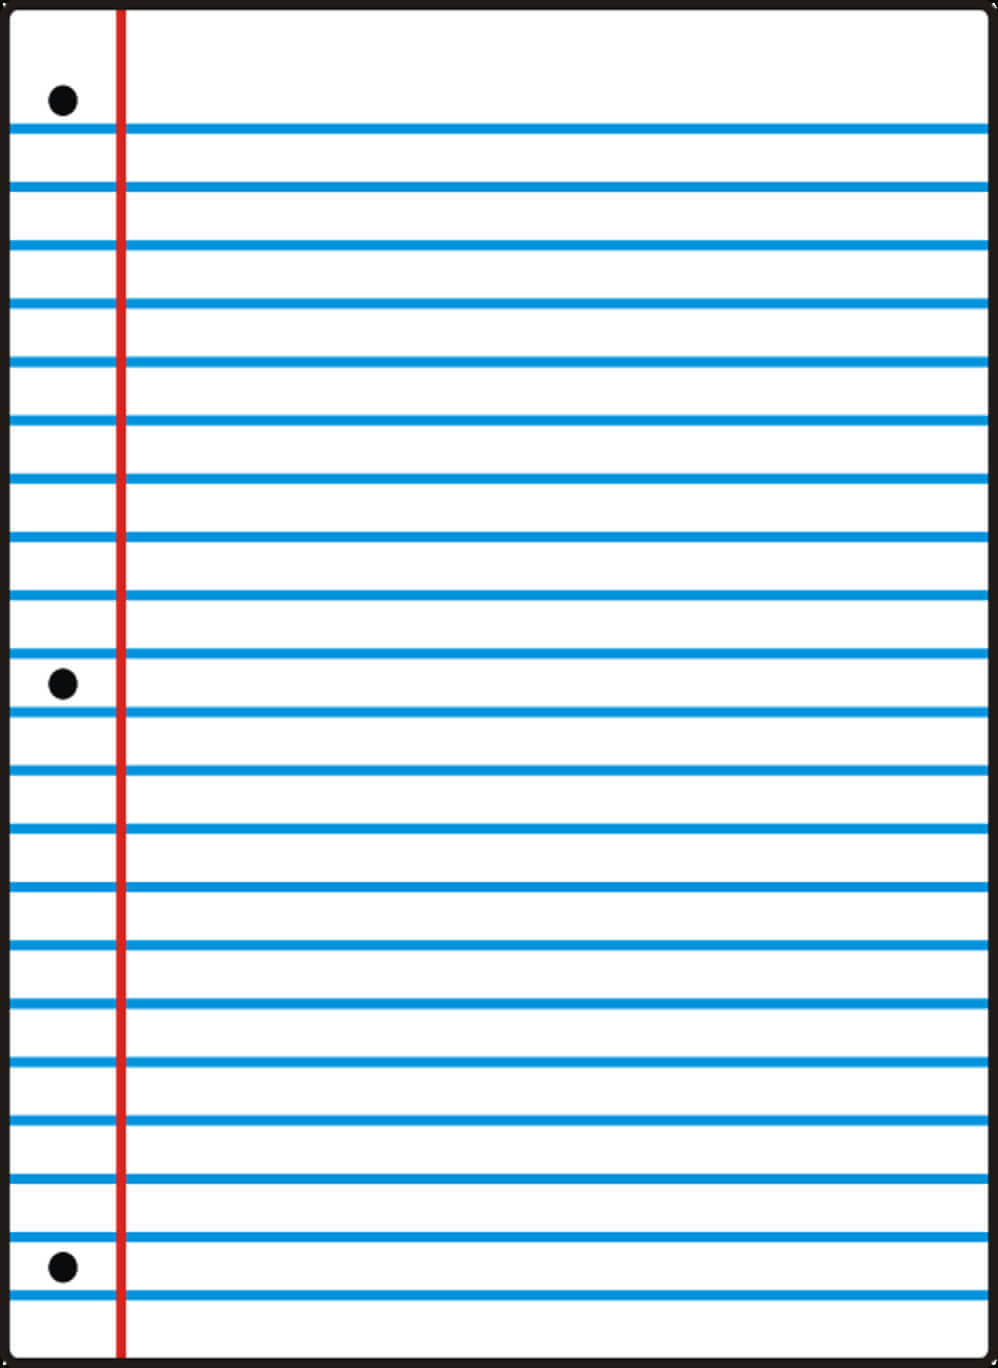 Notebook Paper Template For Word - Clip Art Library With Regard To Notebook Paper Template For Word